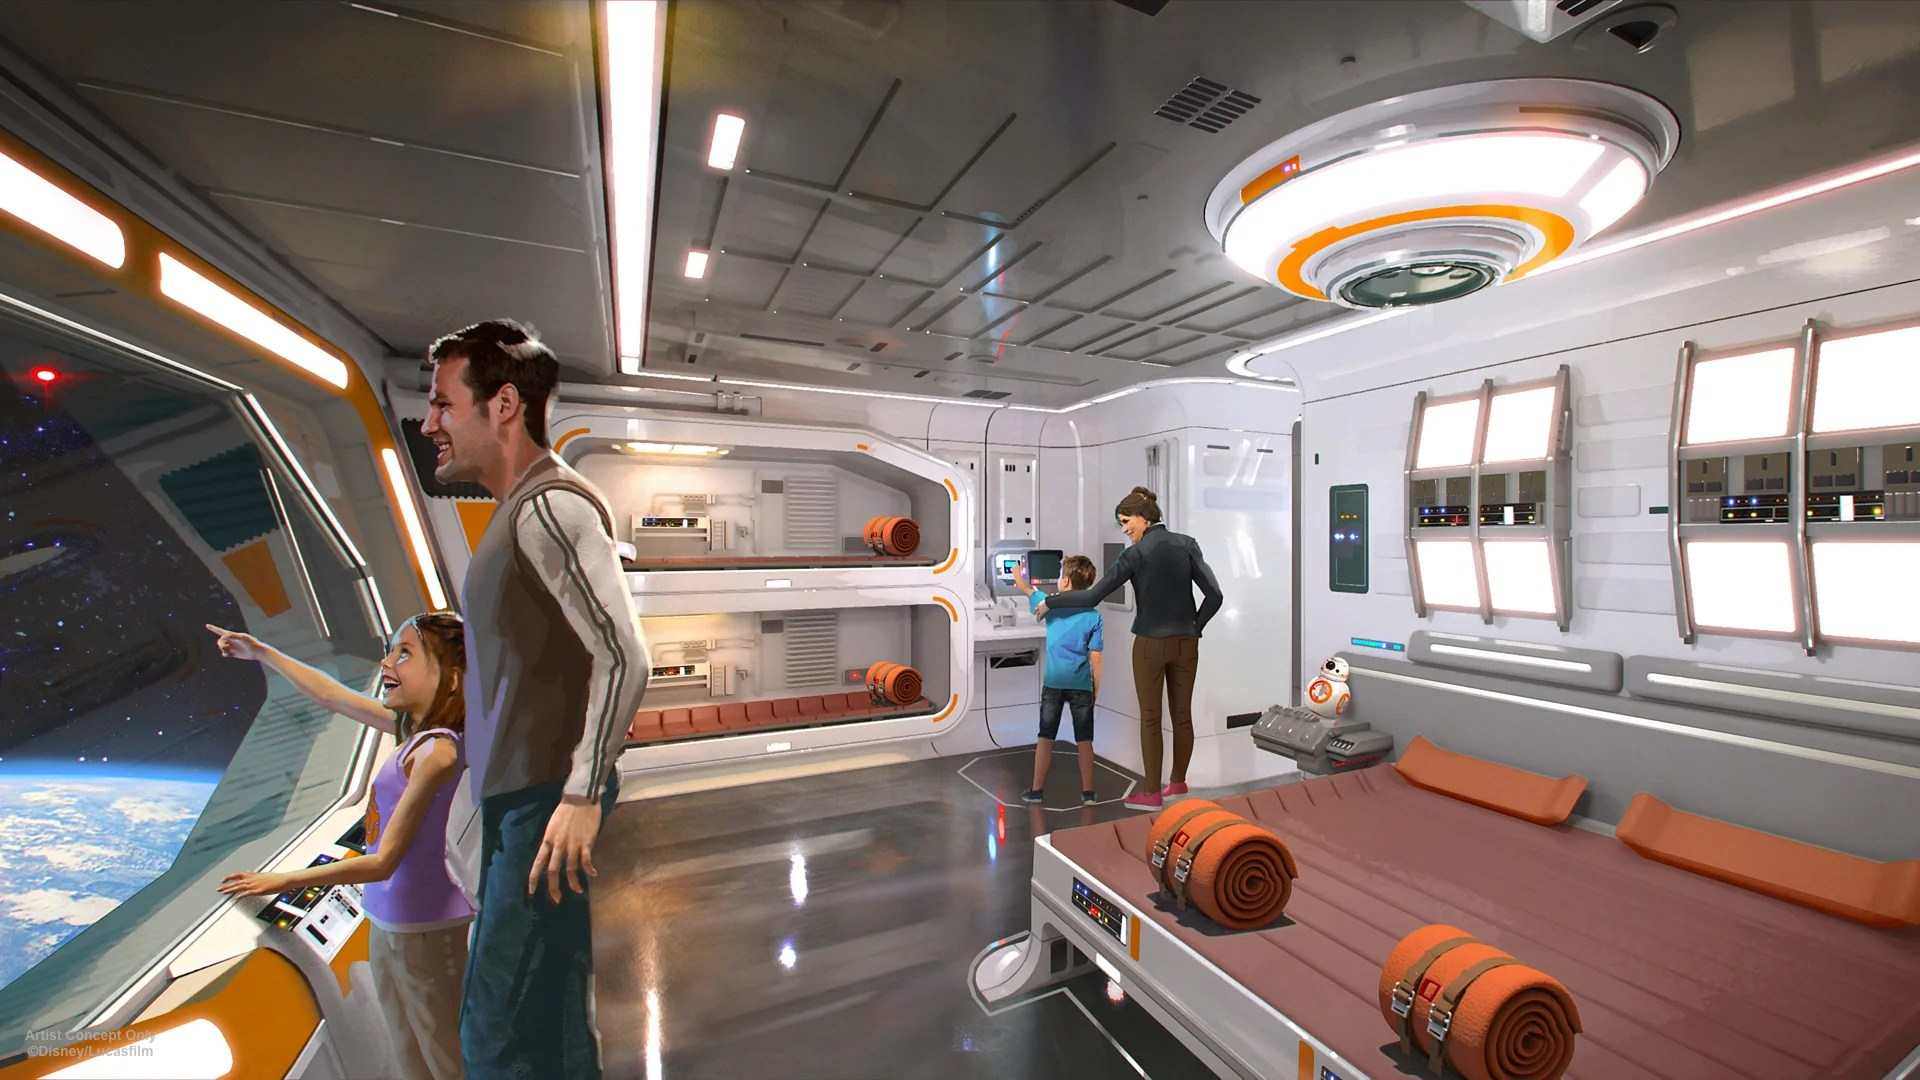 Chewie, We're Home: Everything We Know About Disney's Star Wars Hotel